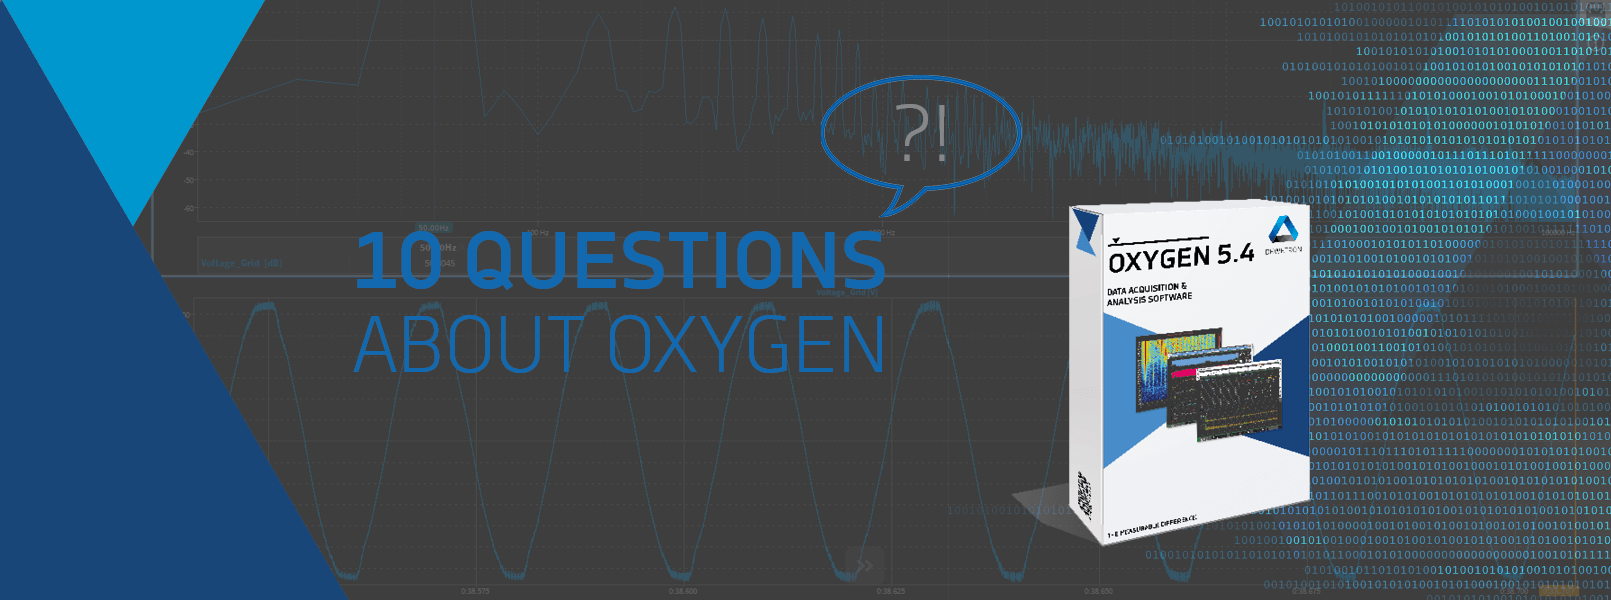 10-questions-about-oxygen